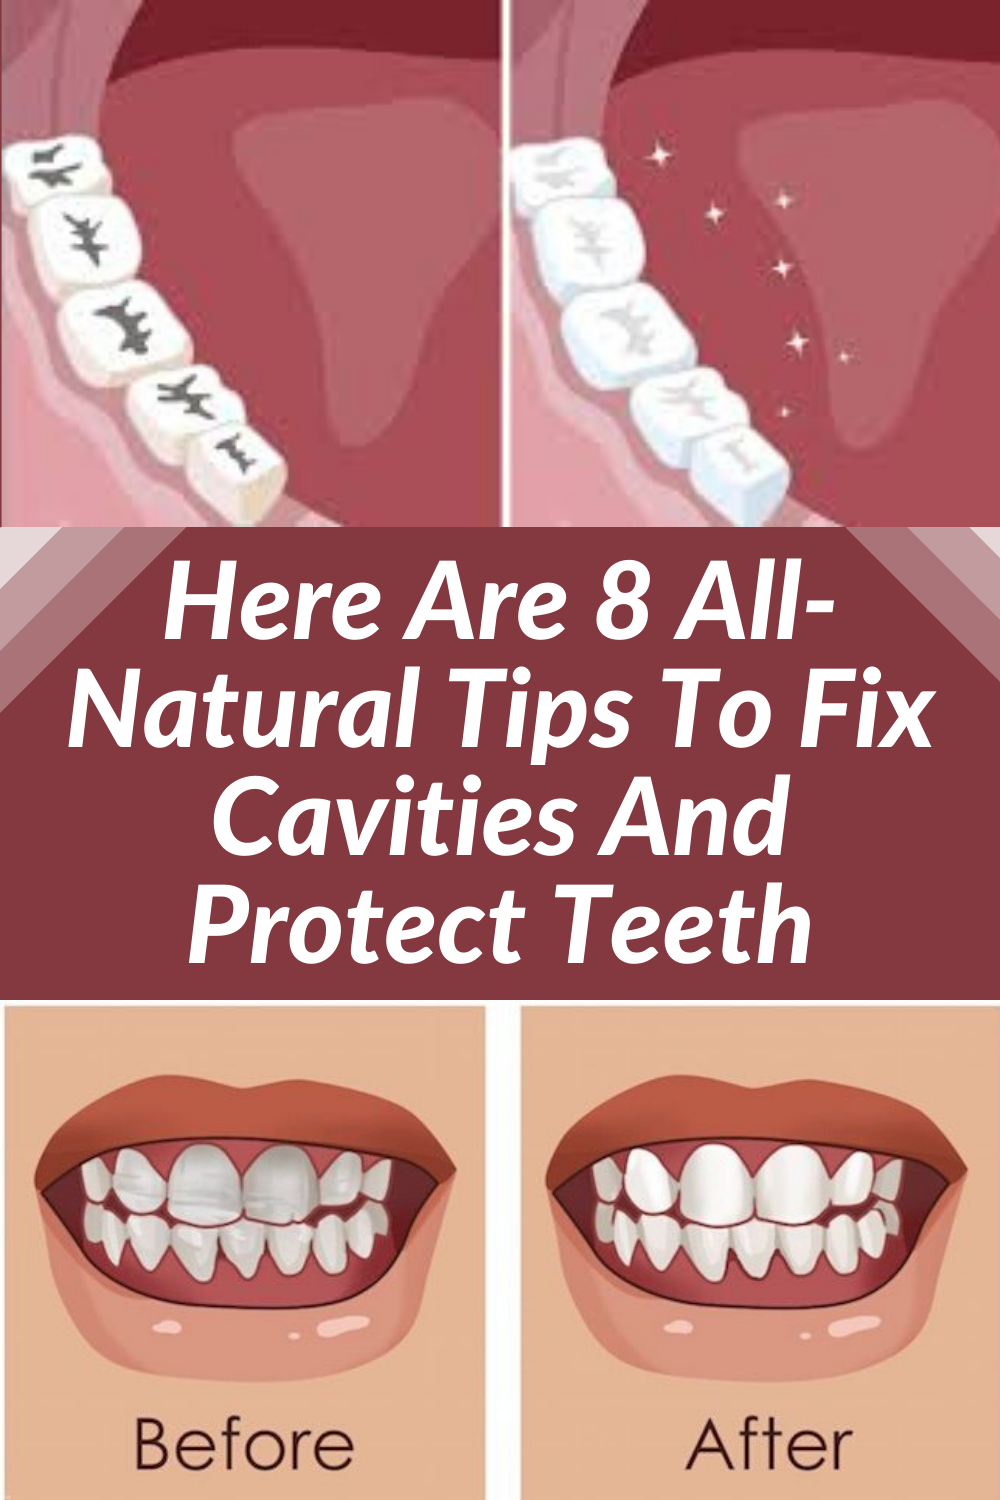 Reverse Cavities And Heal Tooth Decay Without Drilling Using These 8 All Natural Dental Tips Cavities Heal Cavities Tooth Decay